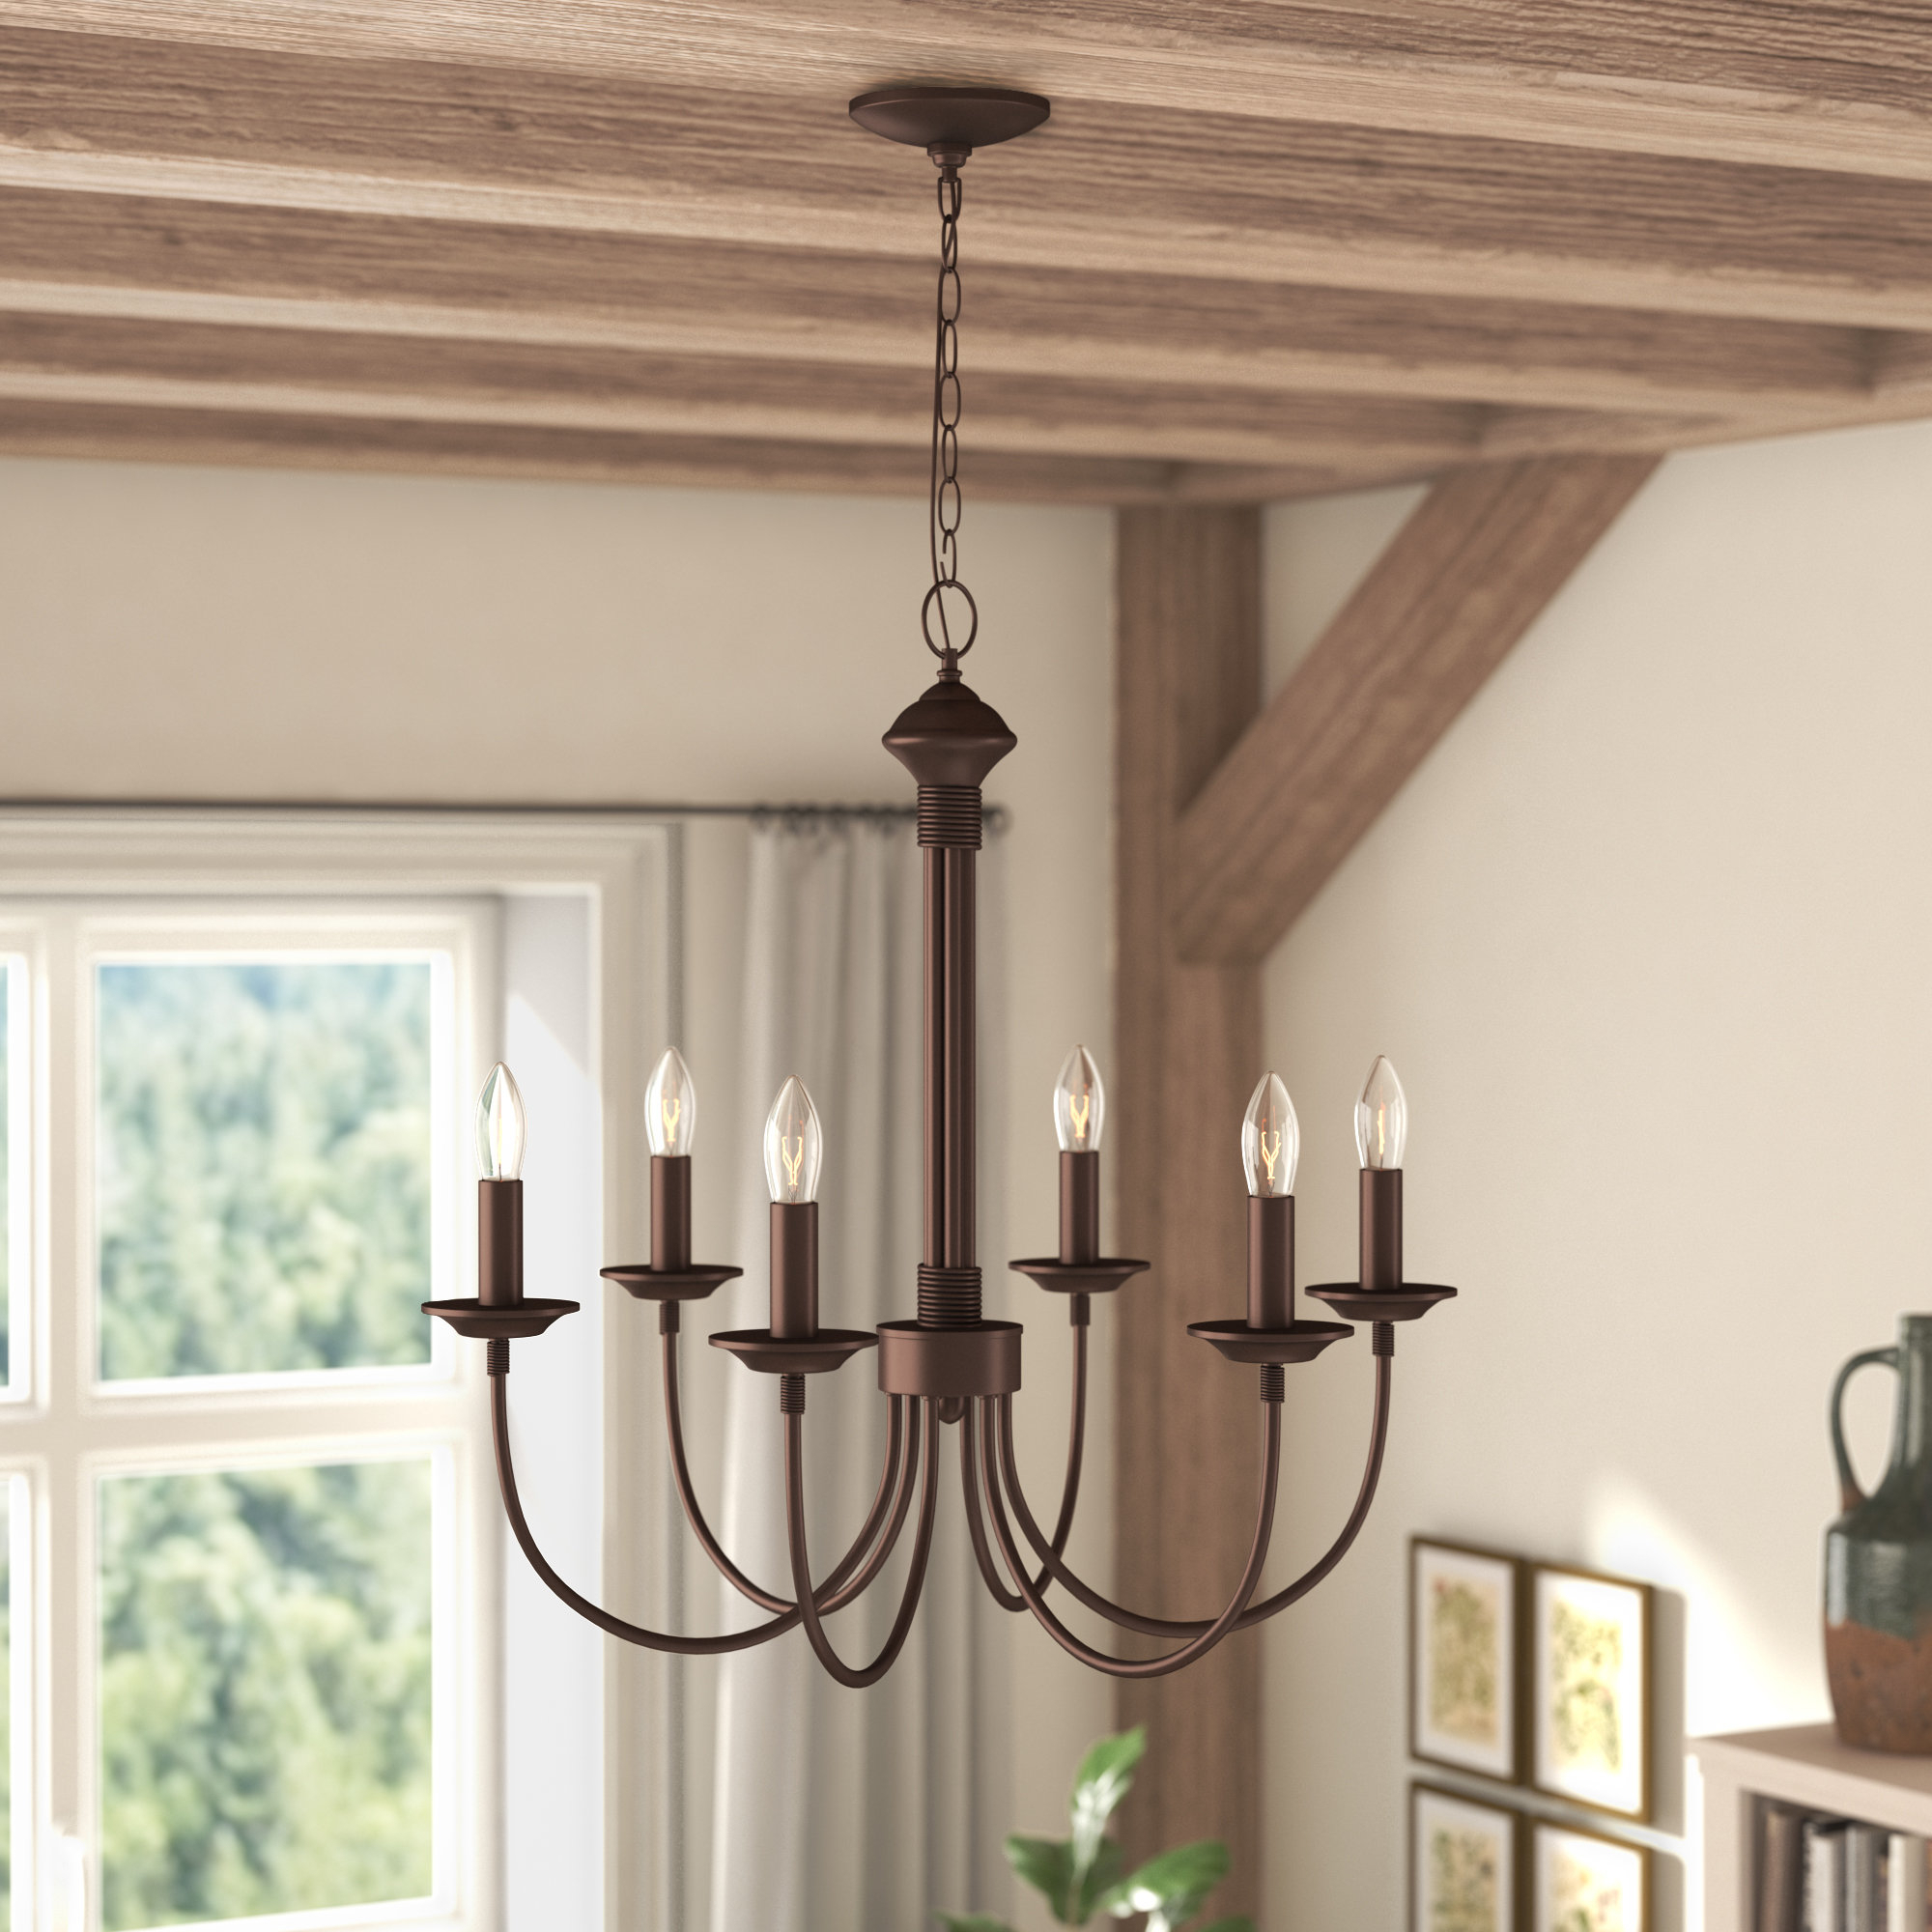 Laurel Foundry Modern Farmhouse Shaylee 6 Light Candle Style Chandelier Intended For Shaylee 6 Light Candle Style Chandeliers (View 16 of 30)